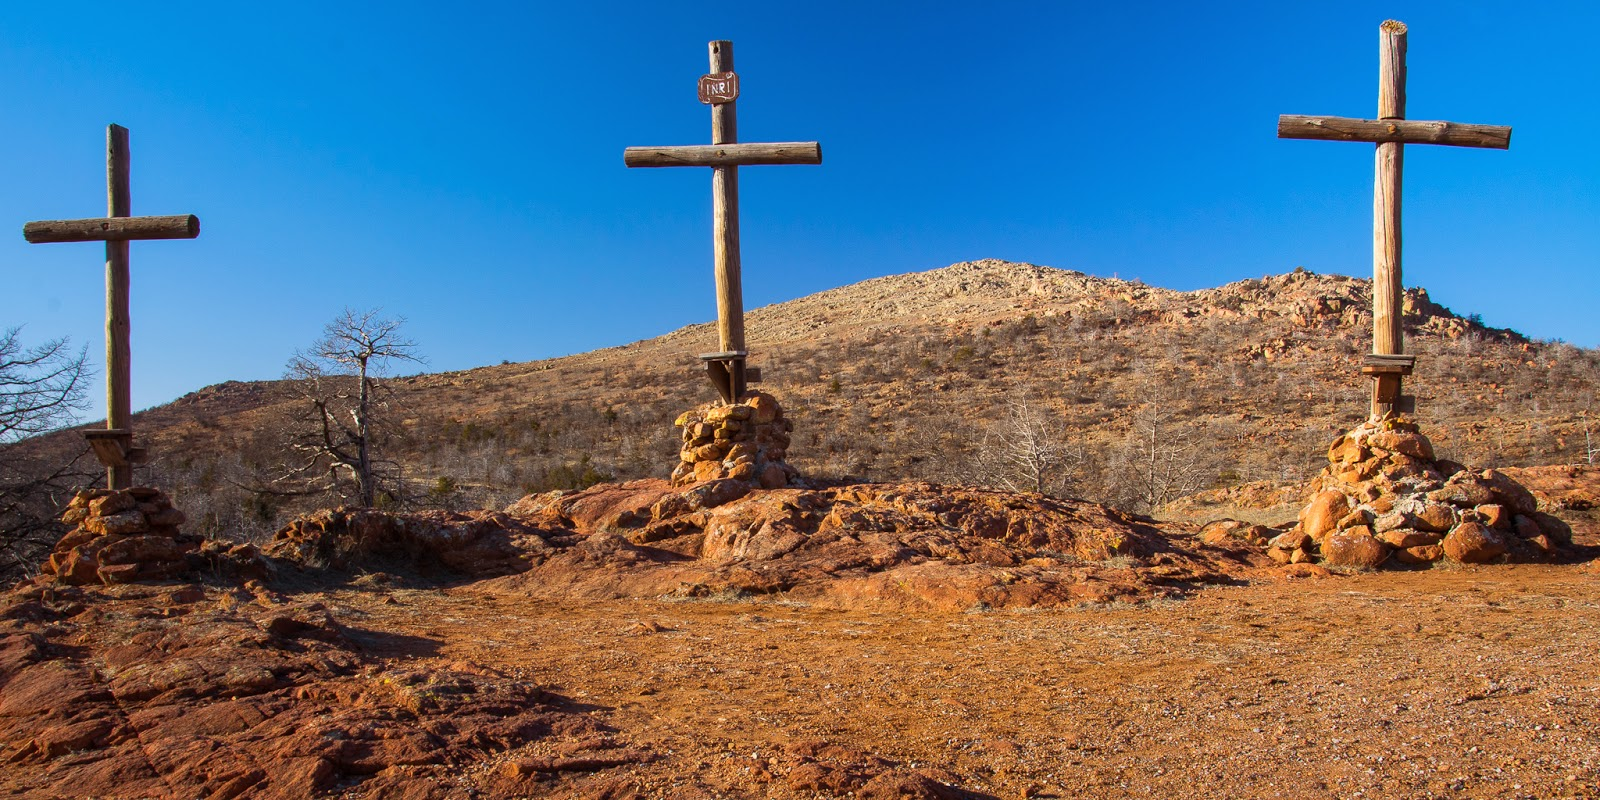 Holy City, Wichita Mountains Wildlife Refuge